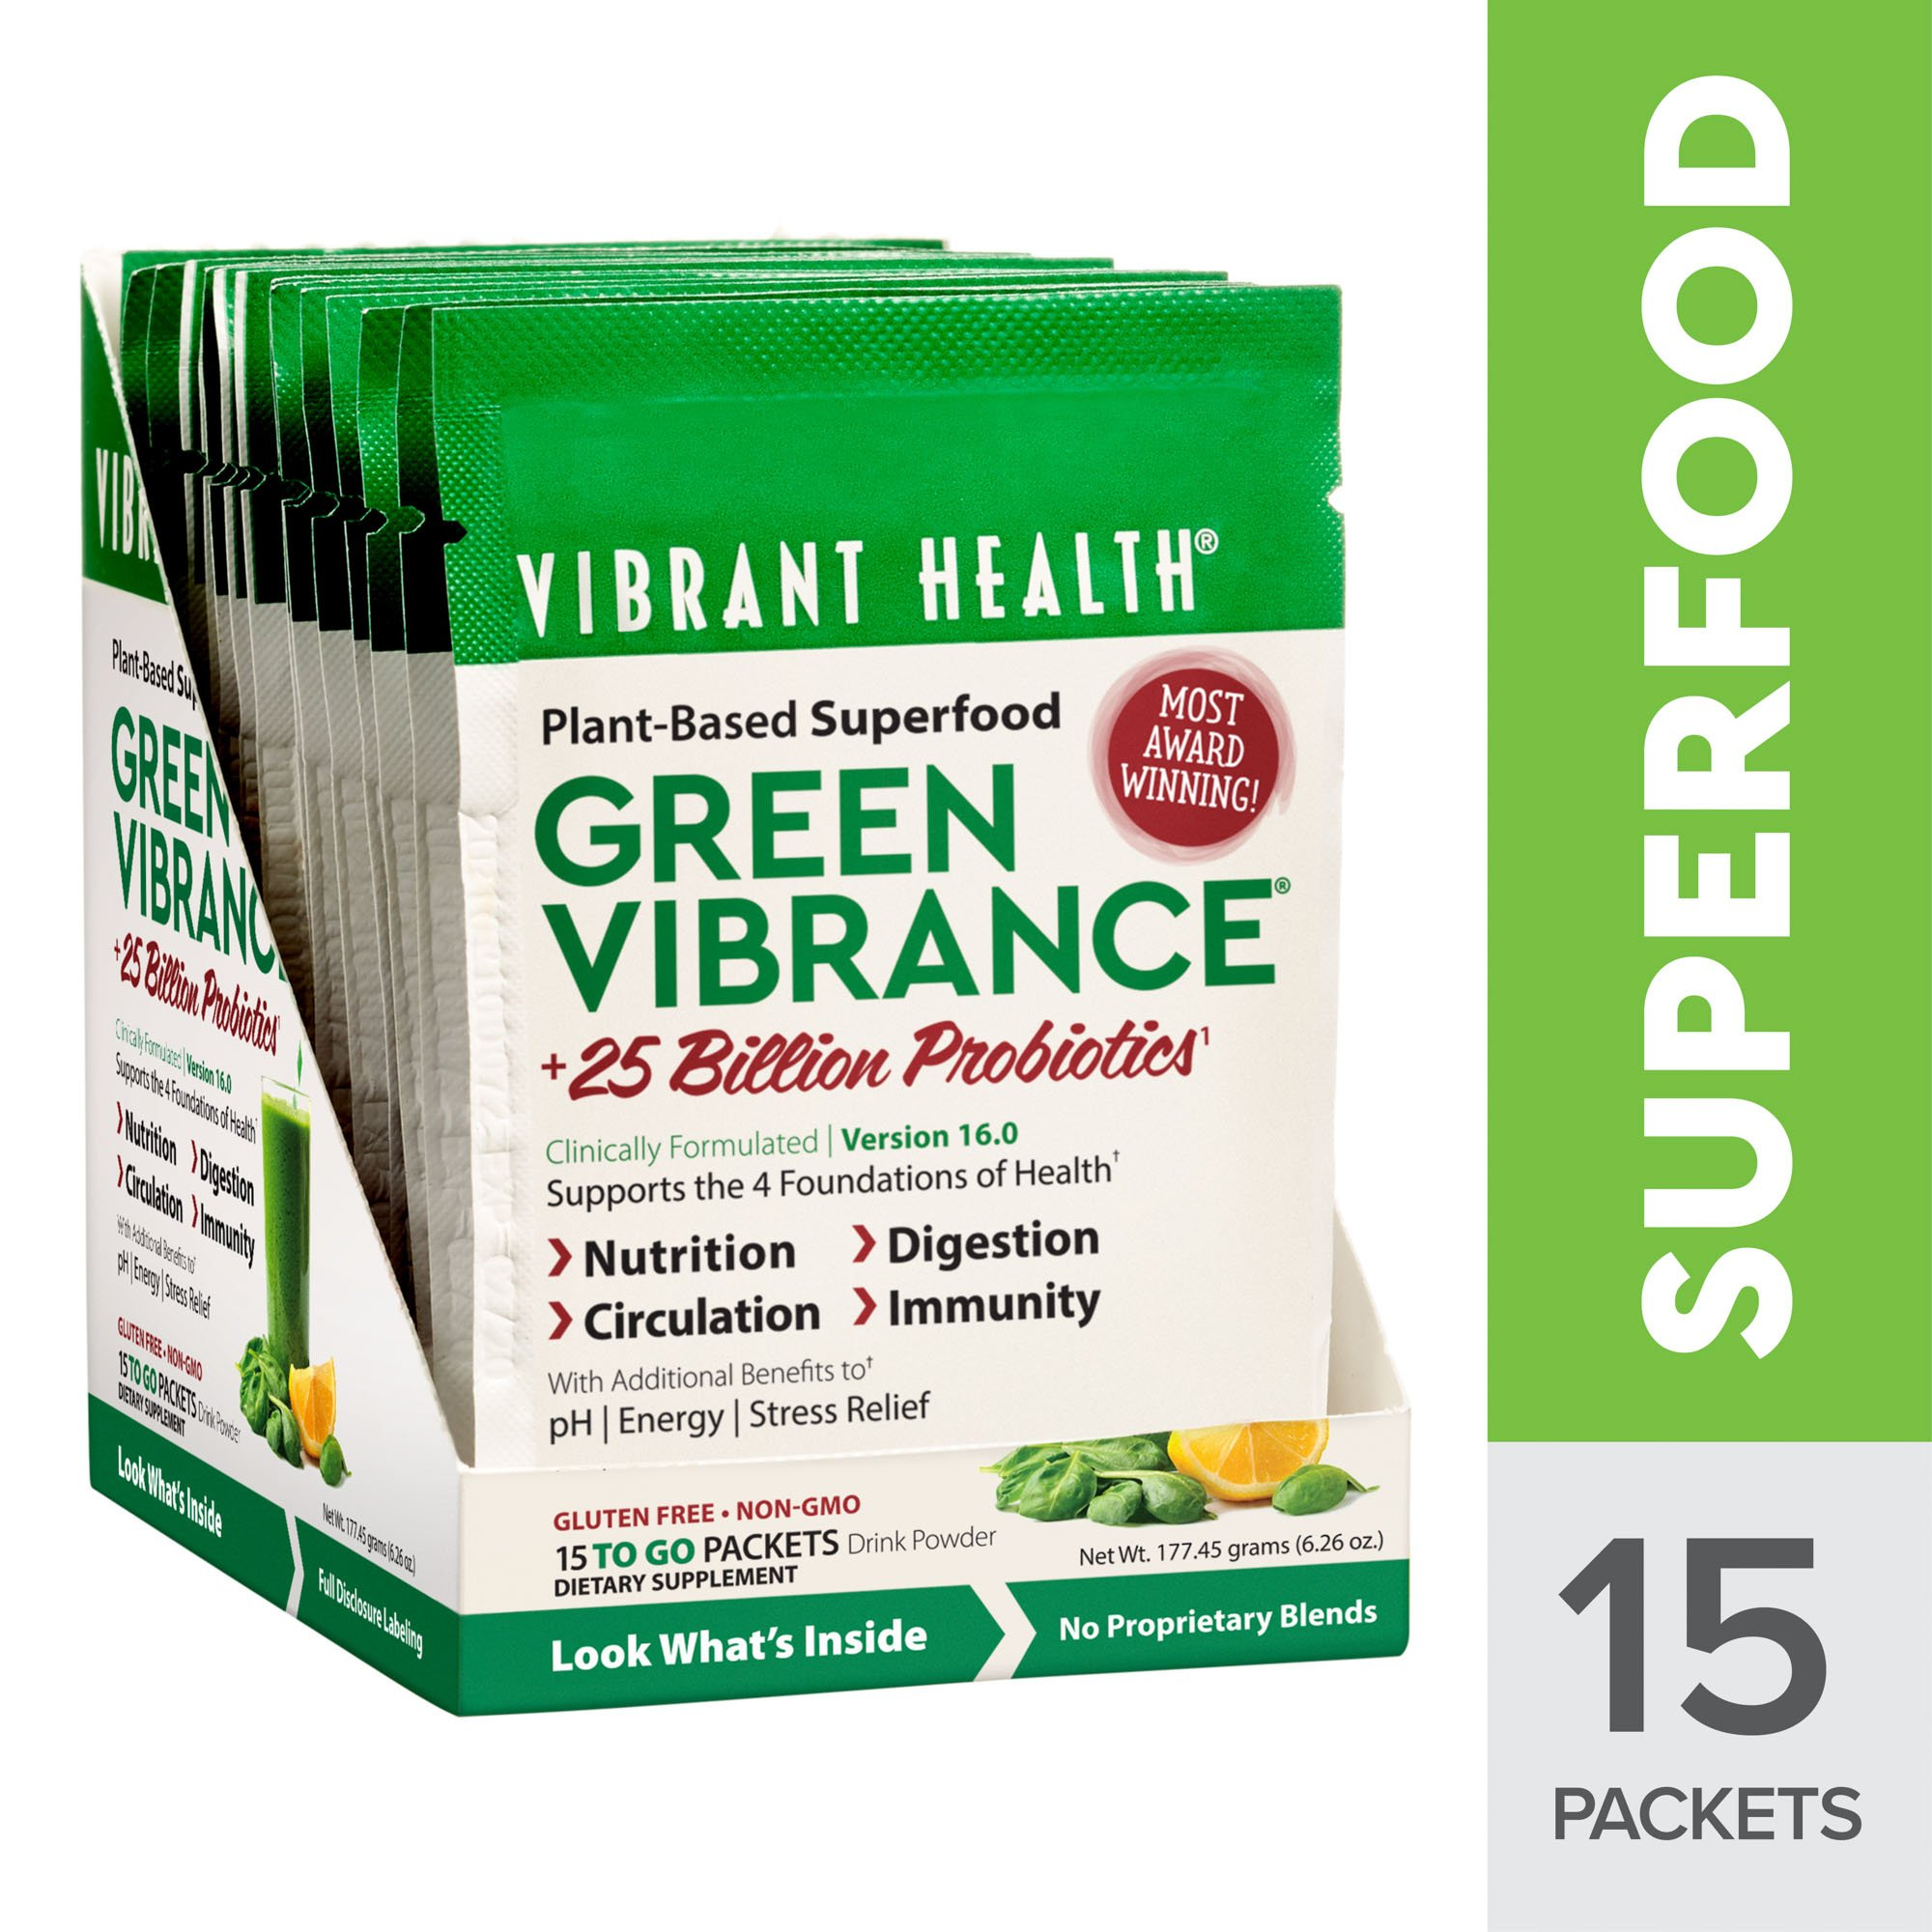 Vibrant Health - Green Vibrance, Plant-based Daily Superfood + Protein and Antioxidants, 15 Packets by Vibrant Health (Image #1)